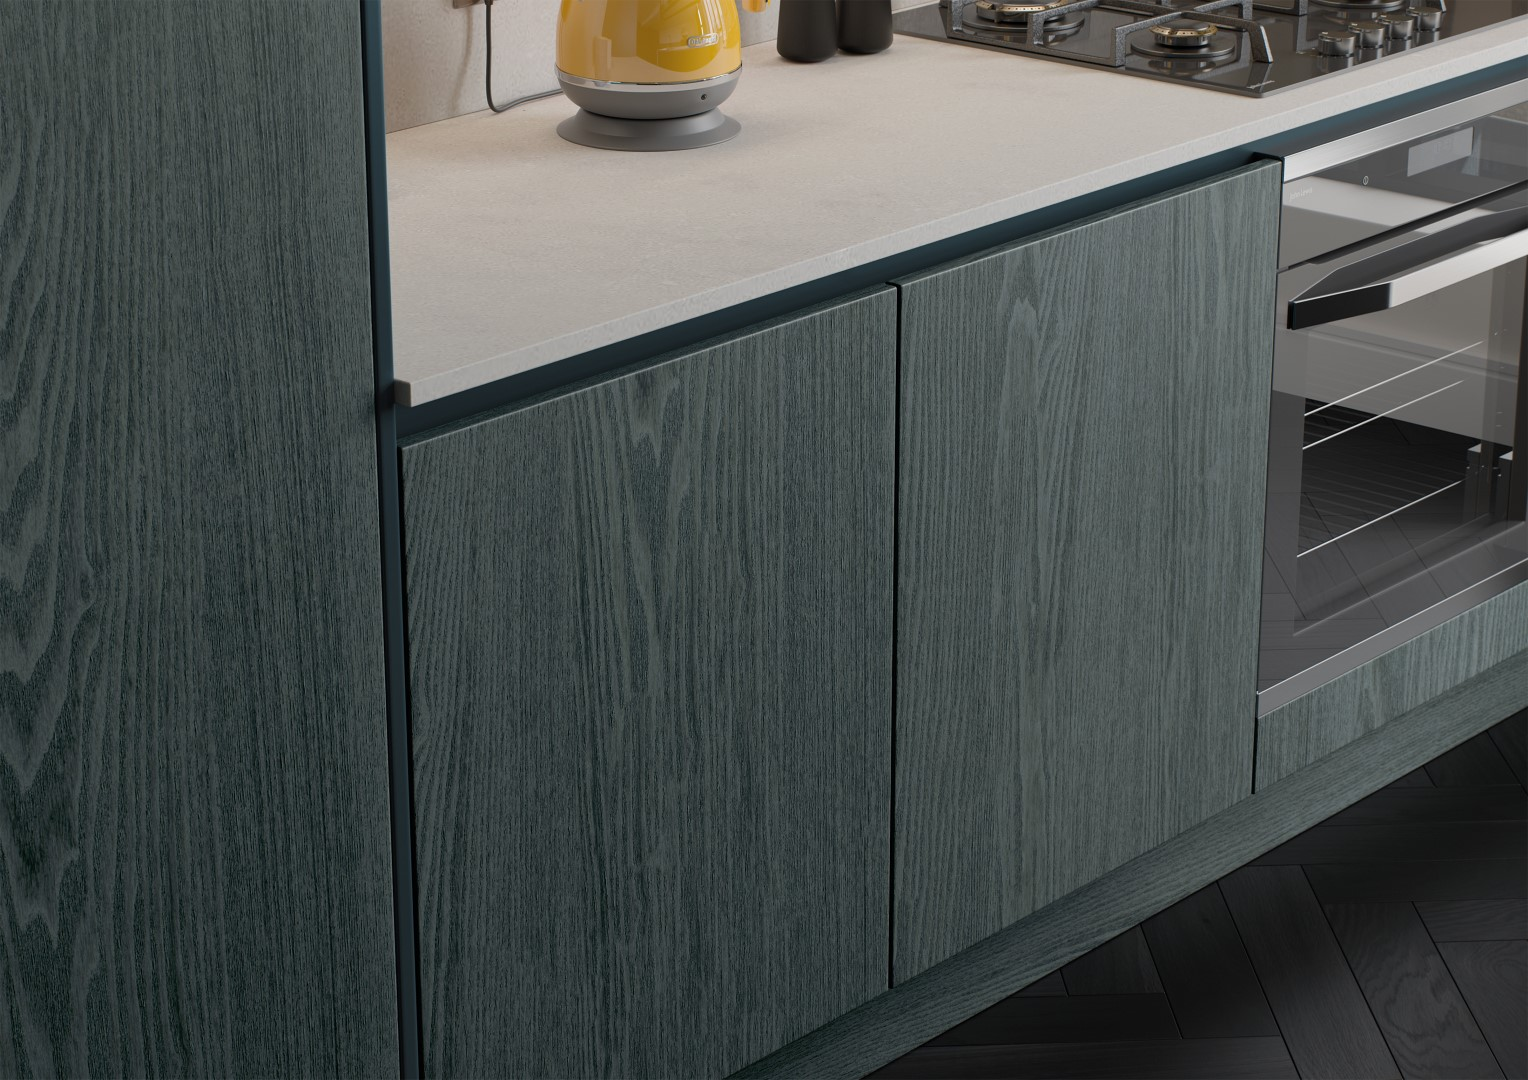 Kelso Stained Pacific Blue and Zola Matte Marine - Kitchen Design - Alan Kelly Kitchens Waterford - 4